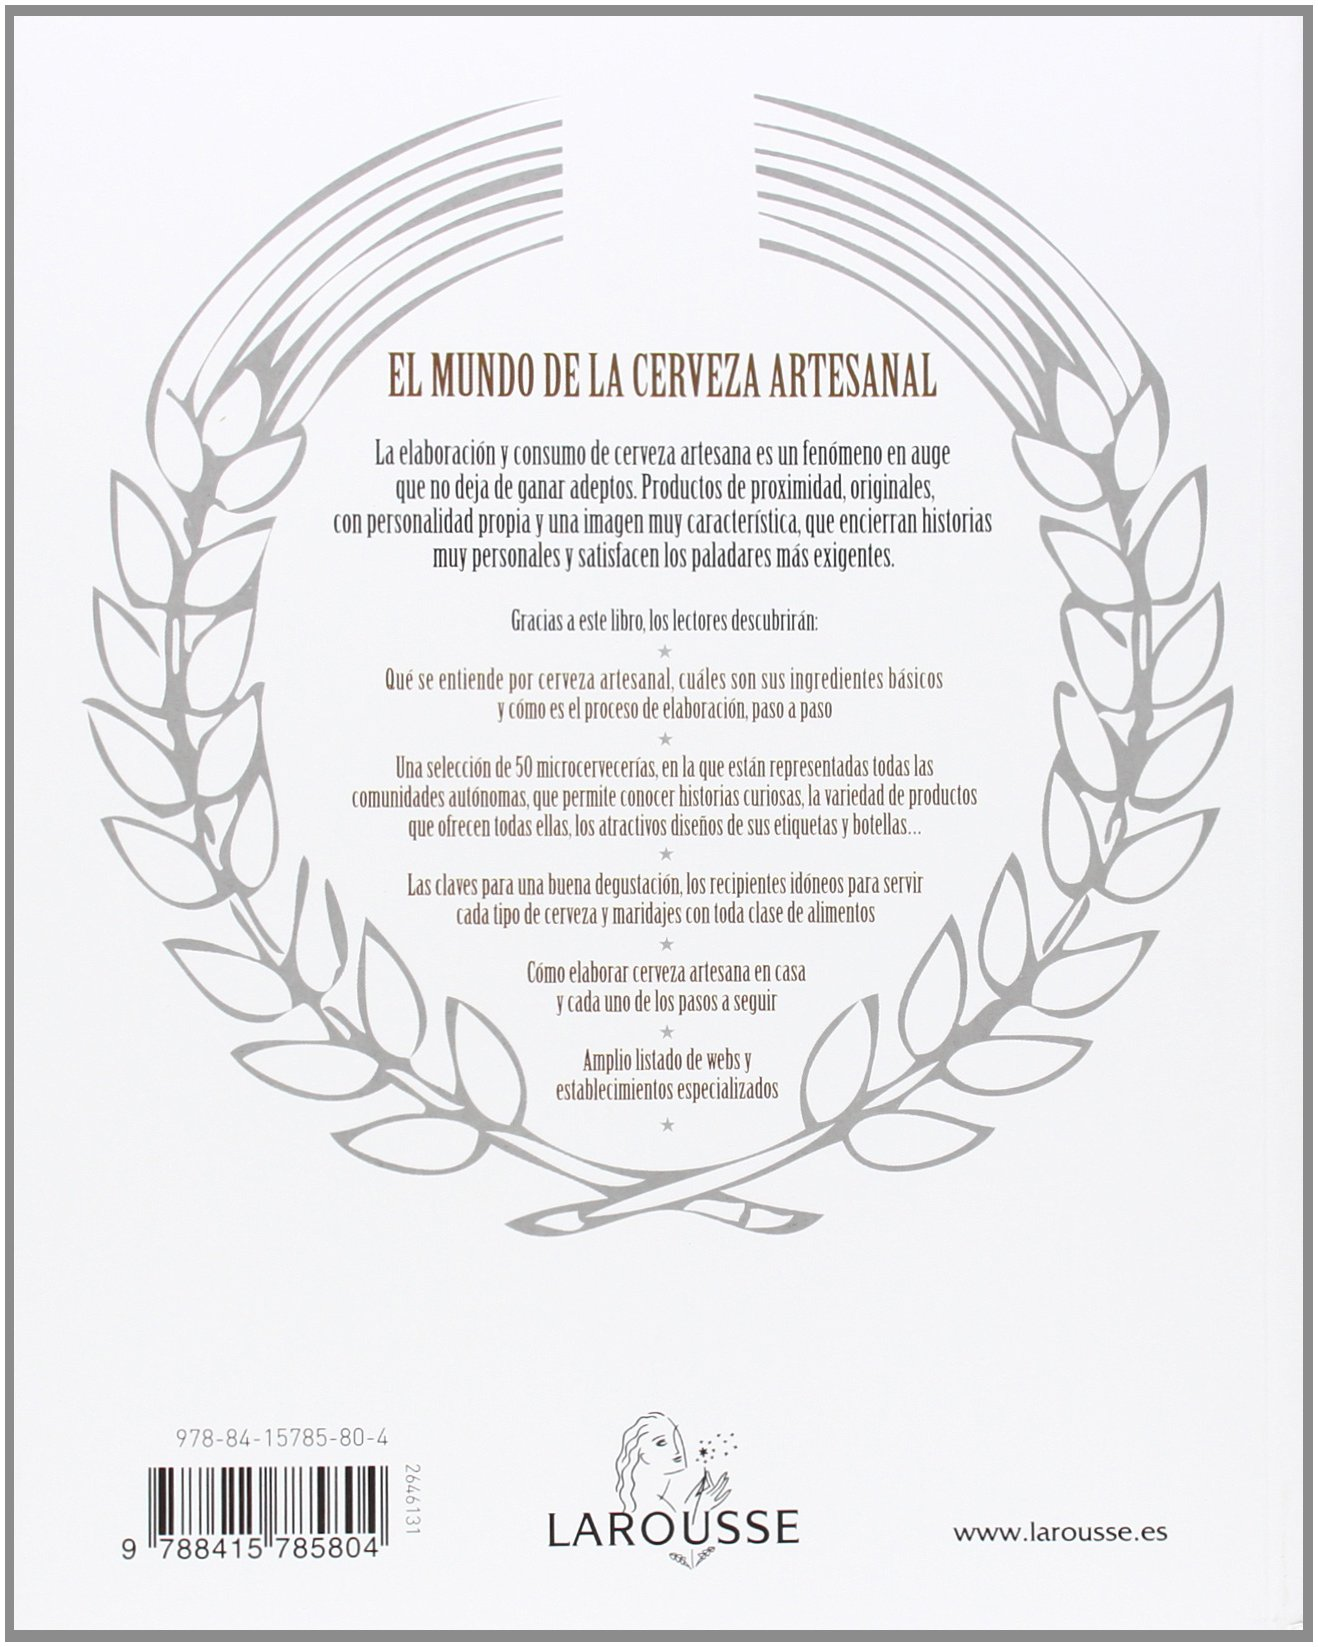 El mundo de la cerveza artesanal / The world of craft beer (Spanish Edition): Sergi Freixes, Albert Punsola: 9788415785804: Amazon.com: Books